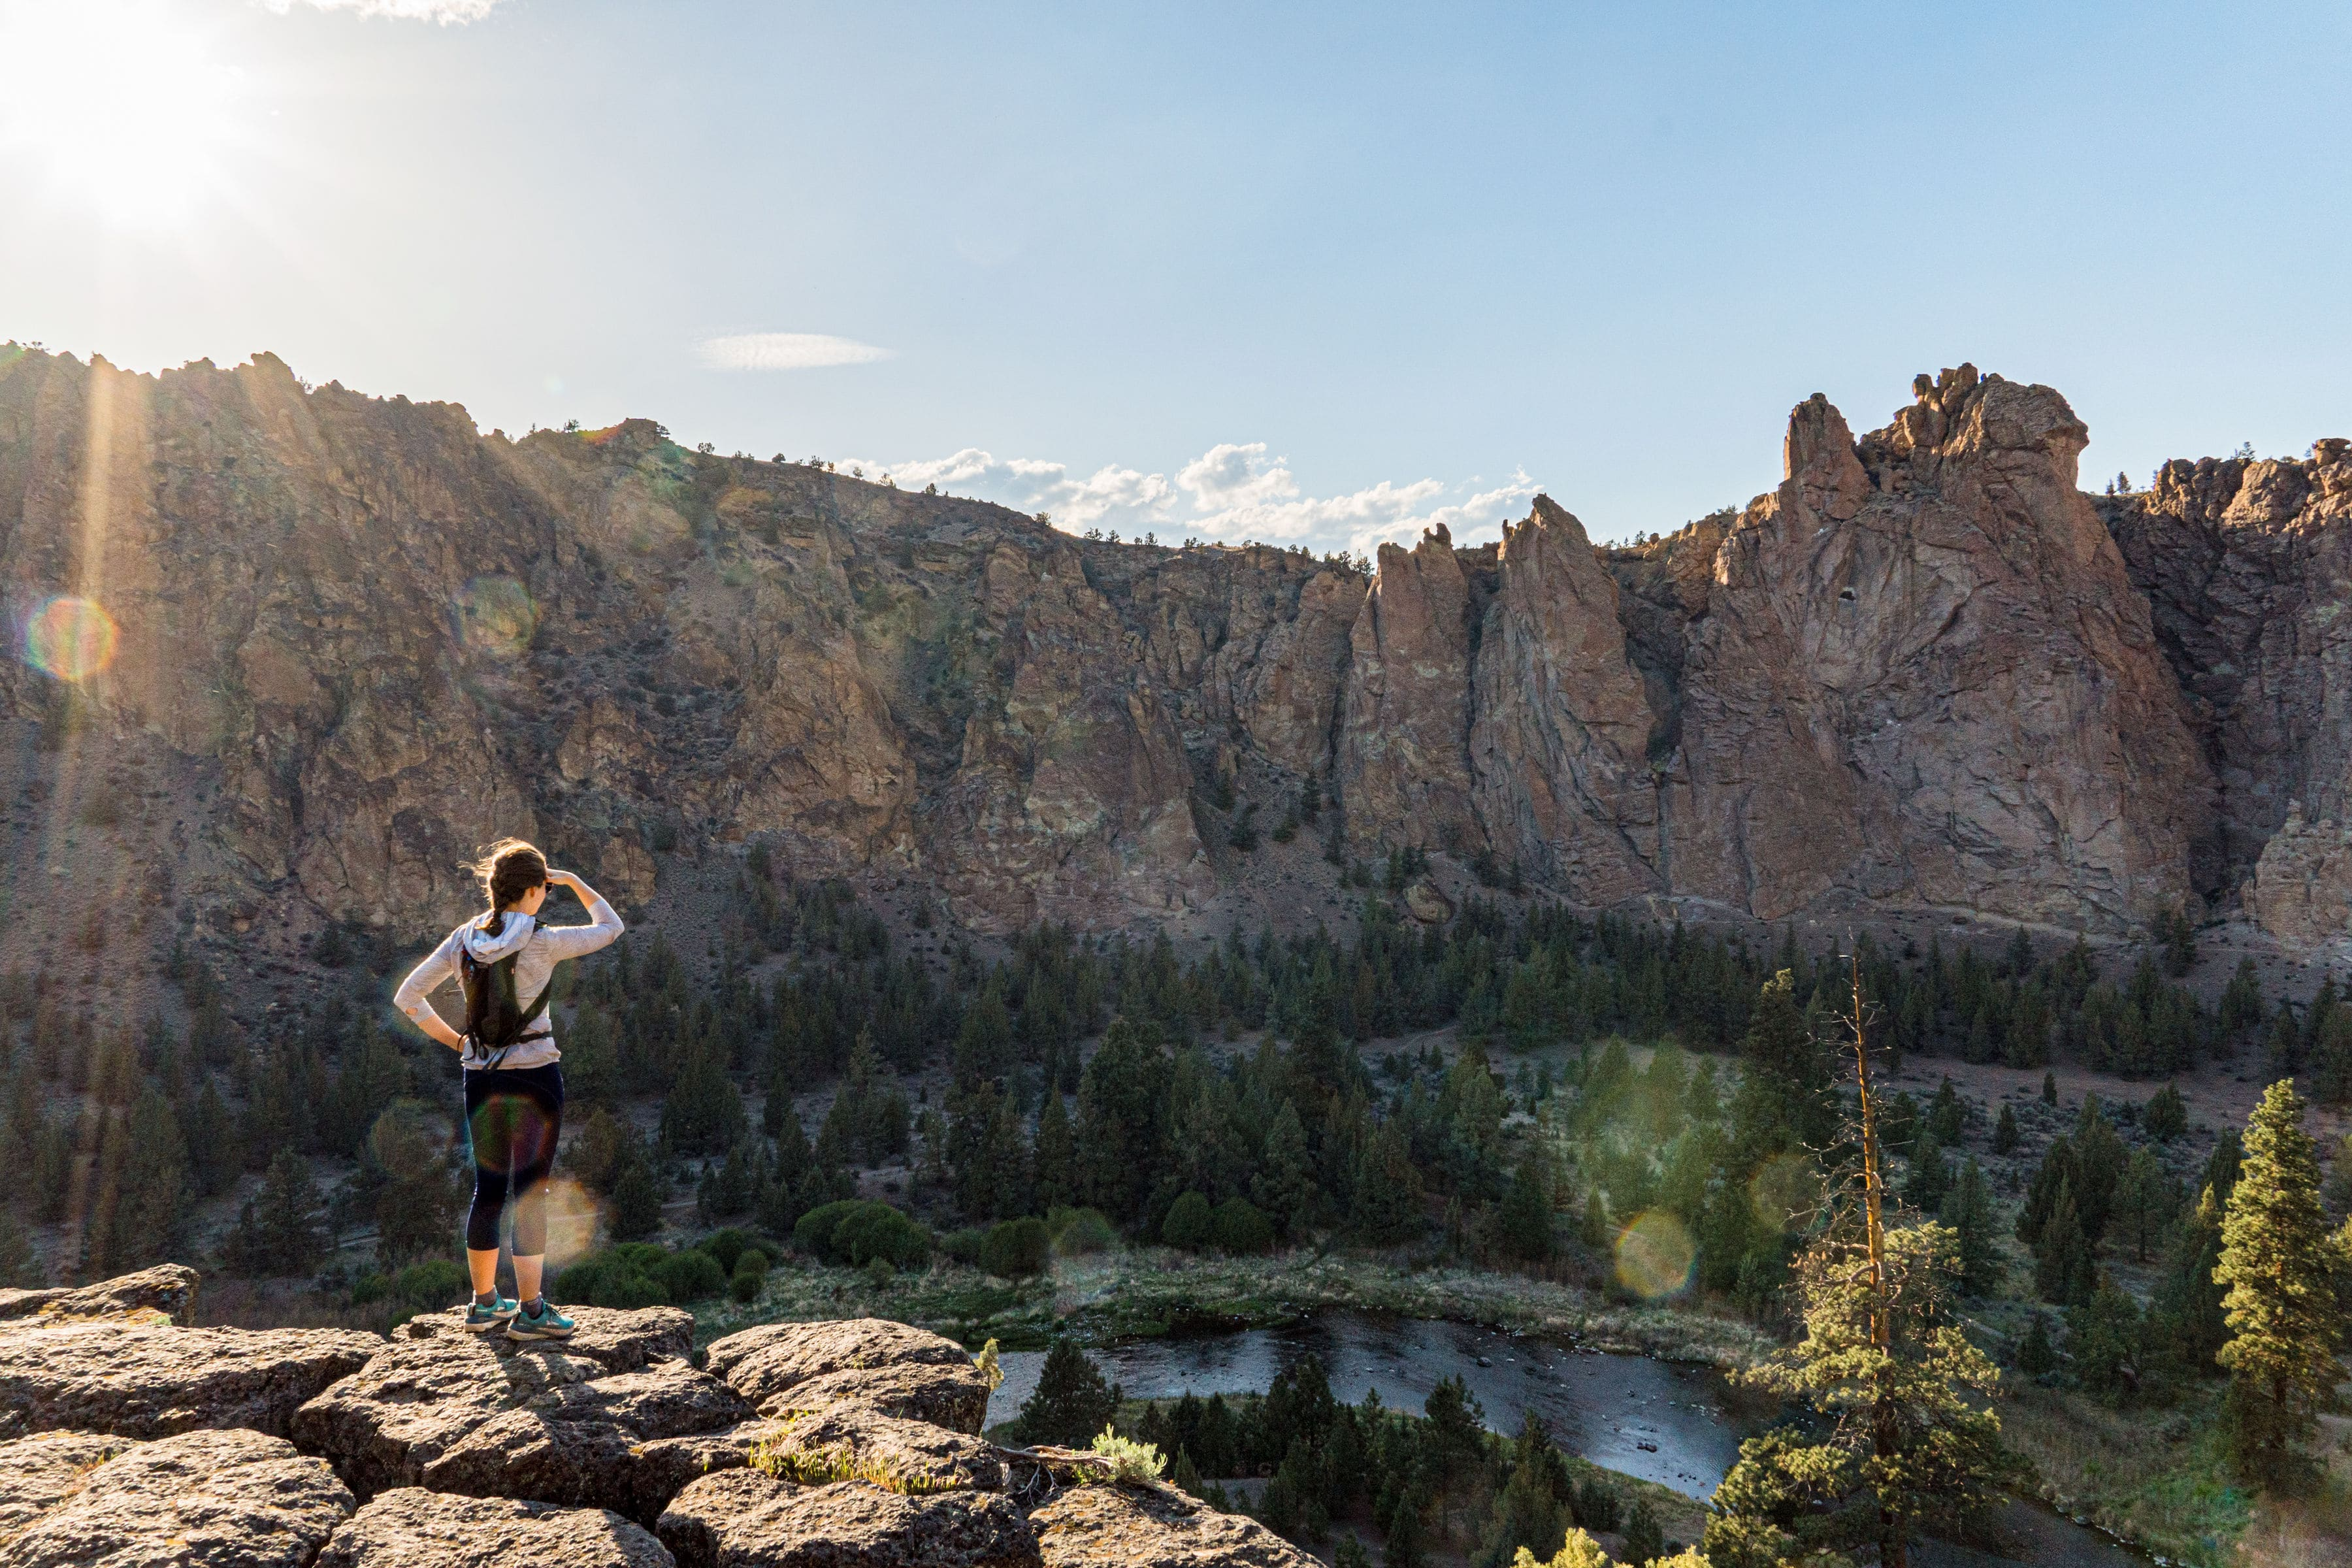 Megan standing at the edge of a trail overlooking a river and canyon walls